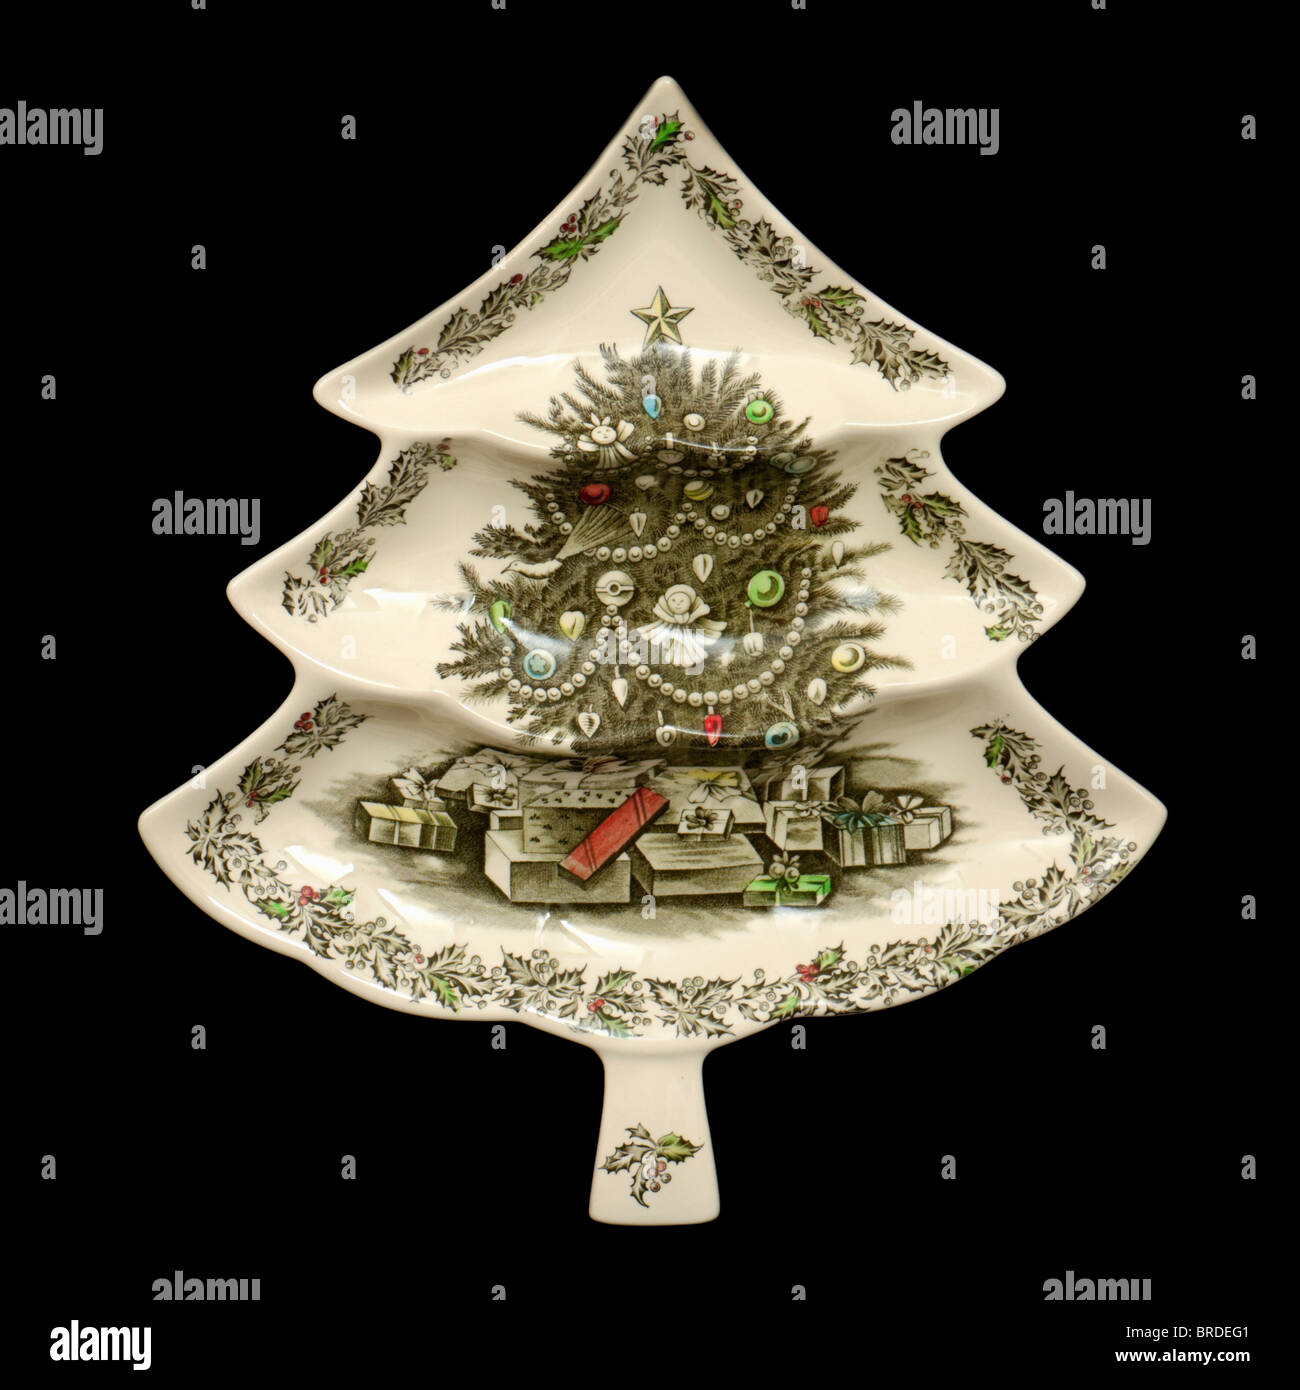 Ceramic Christmas Tree Decorations.Ceramic Christmas Tree Decorations Stock Photos Ceramic